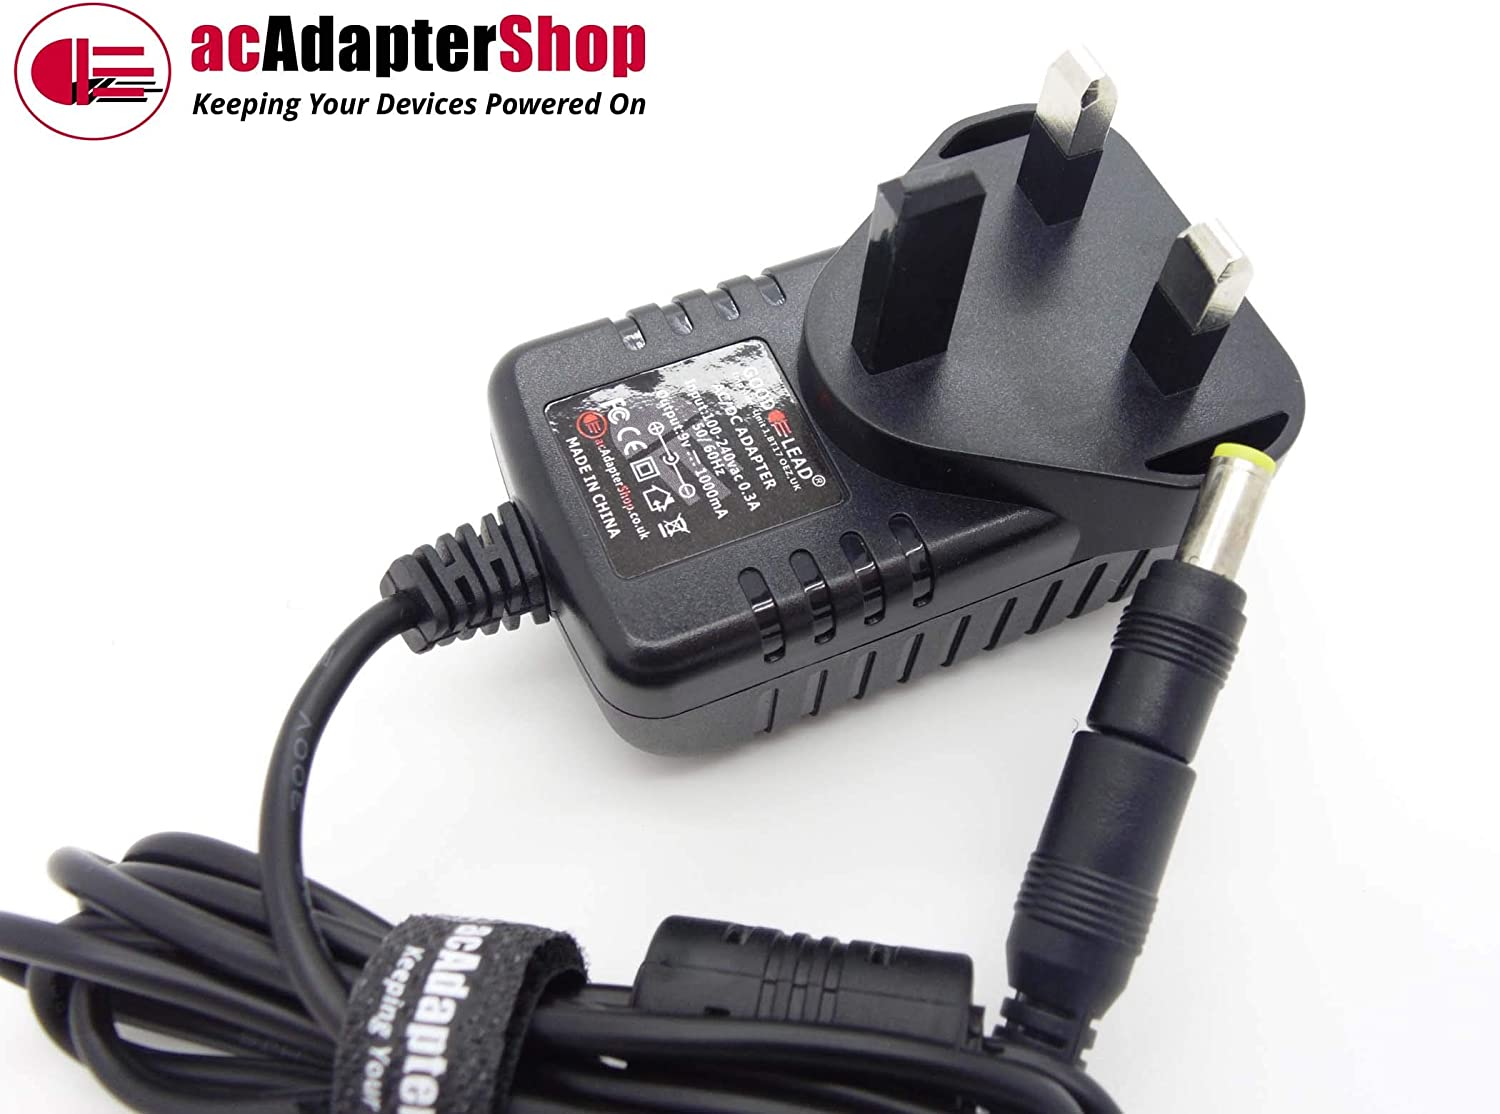 Adaptor Power Lead Charger Switch Mode Power Supply GOOD LEAD 9 Volt Mains AC//DC Adapter Which Is Compatible With INFANT INFANT 02091 Device